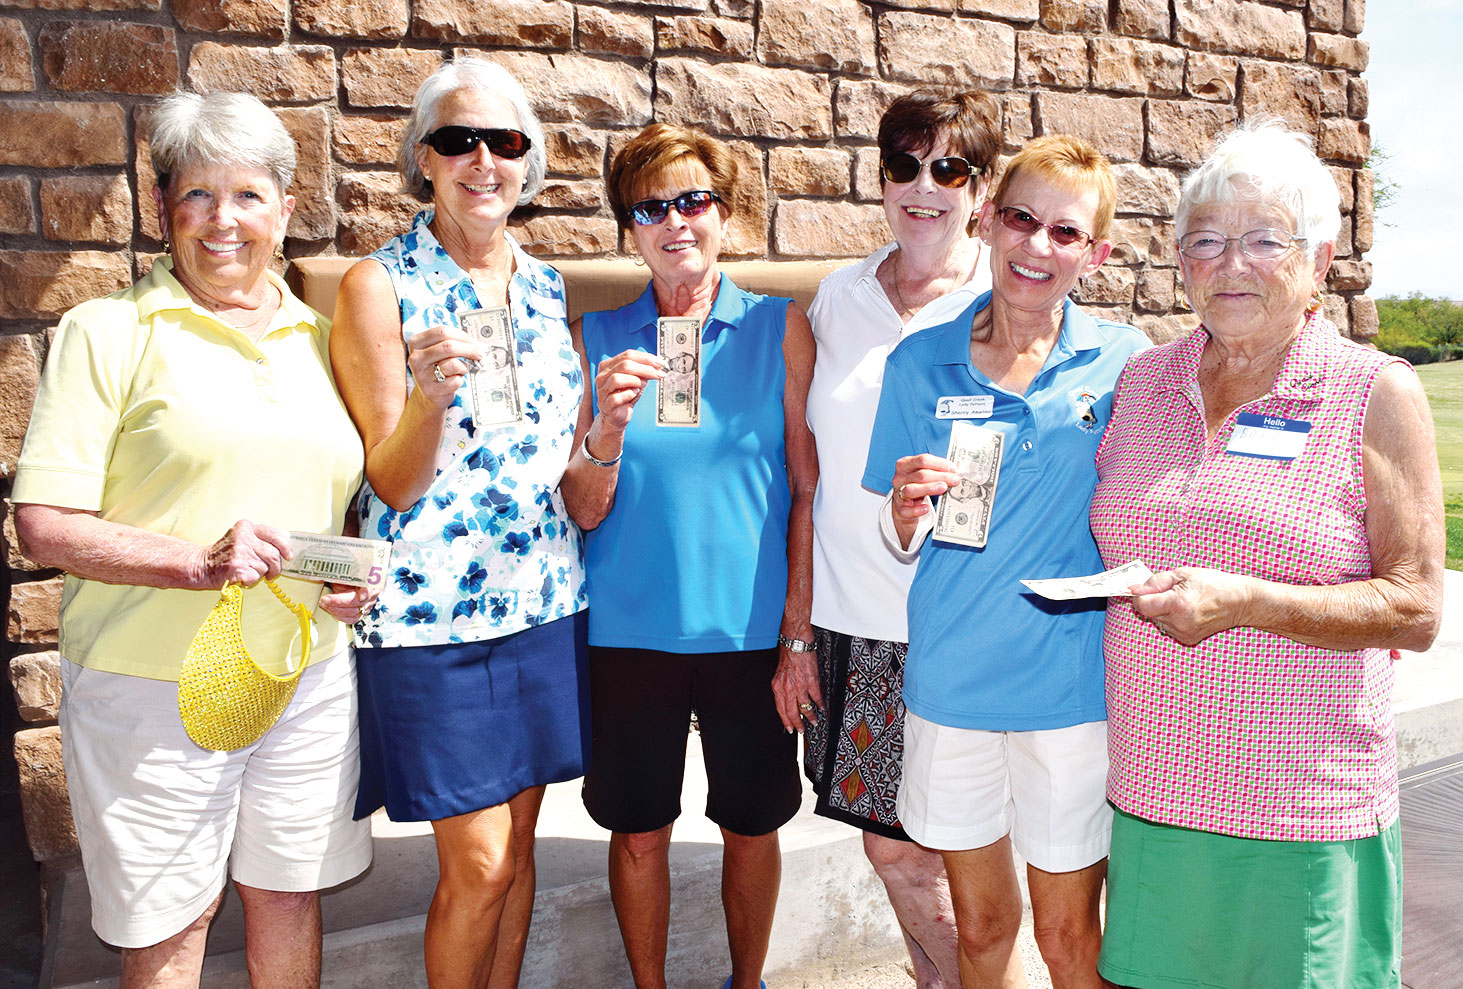 Left to right: Susan Kuehn, Chris Gould, Judy Murray, Gail Phillips, Sherry Ameling and Barb Haley proudly wave their $5 bills for scoring five Holes-In-One; photo by Eileen Sykora